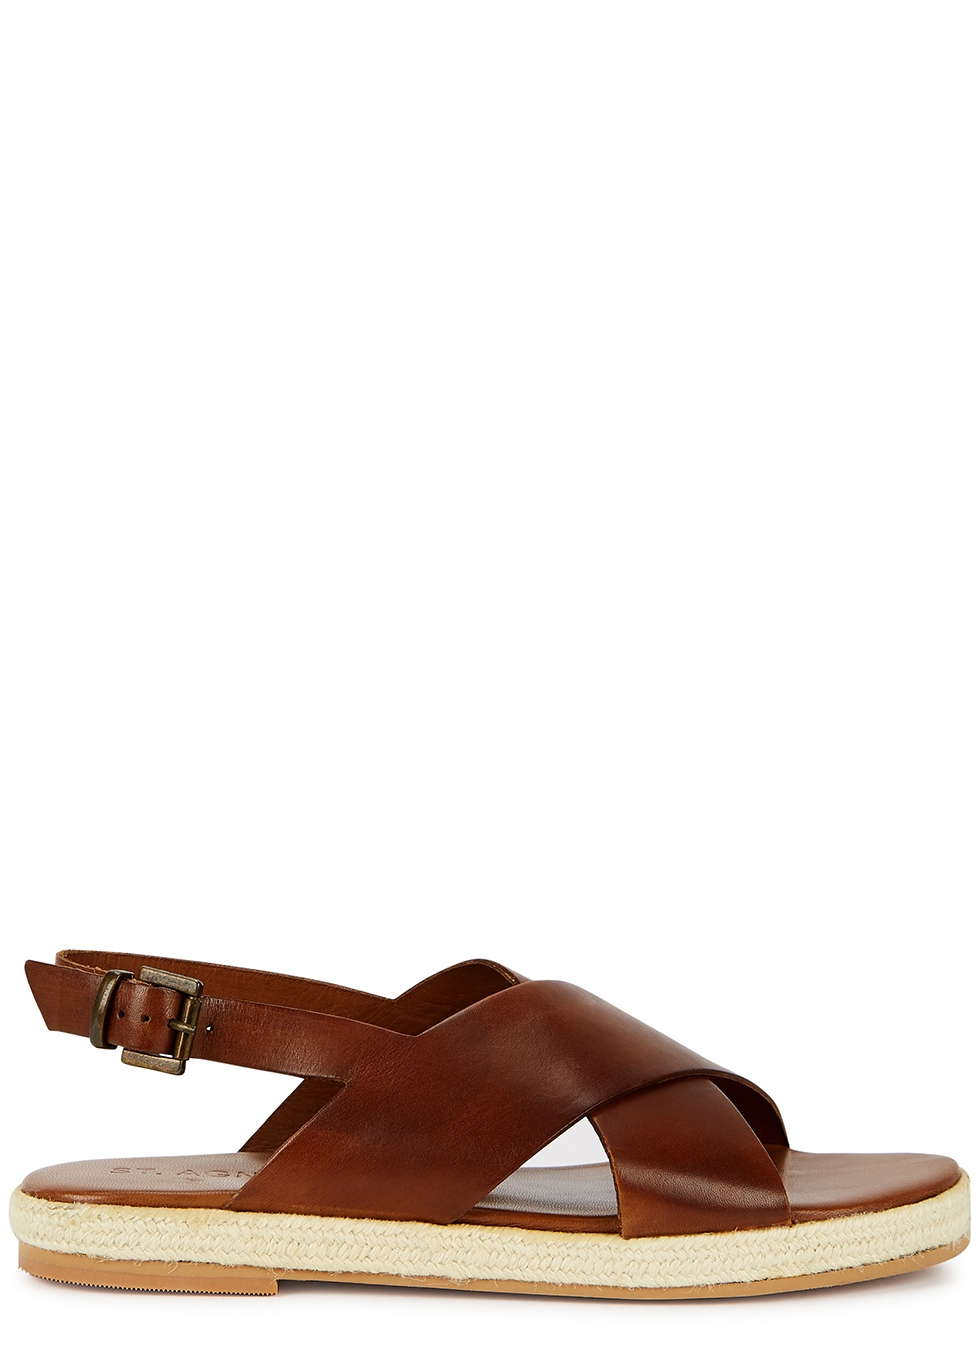 Basque brown leather espadrille sandals